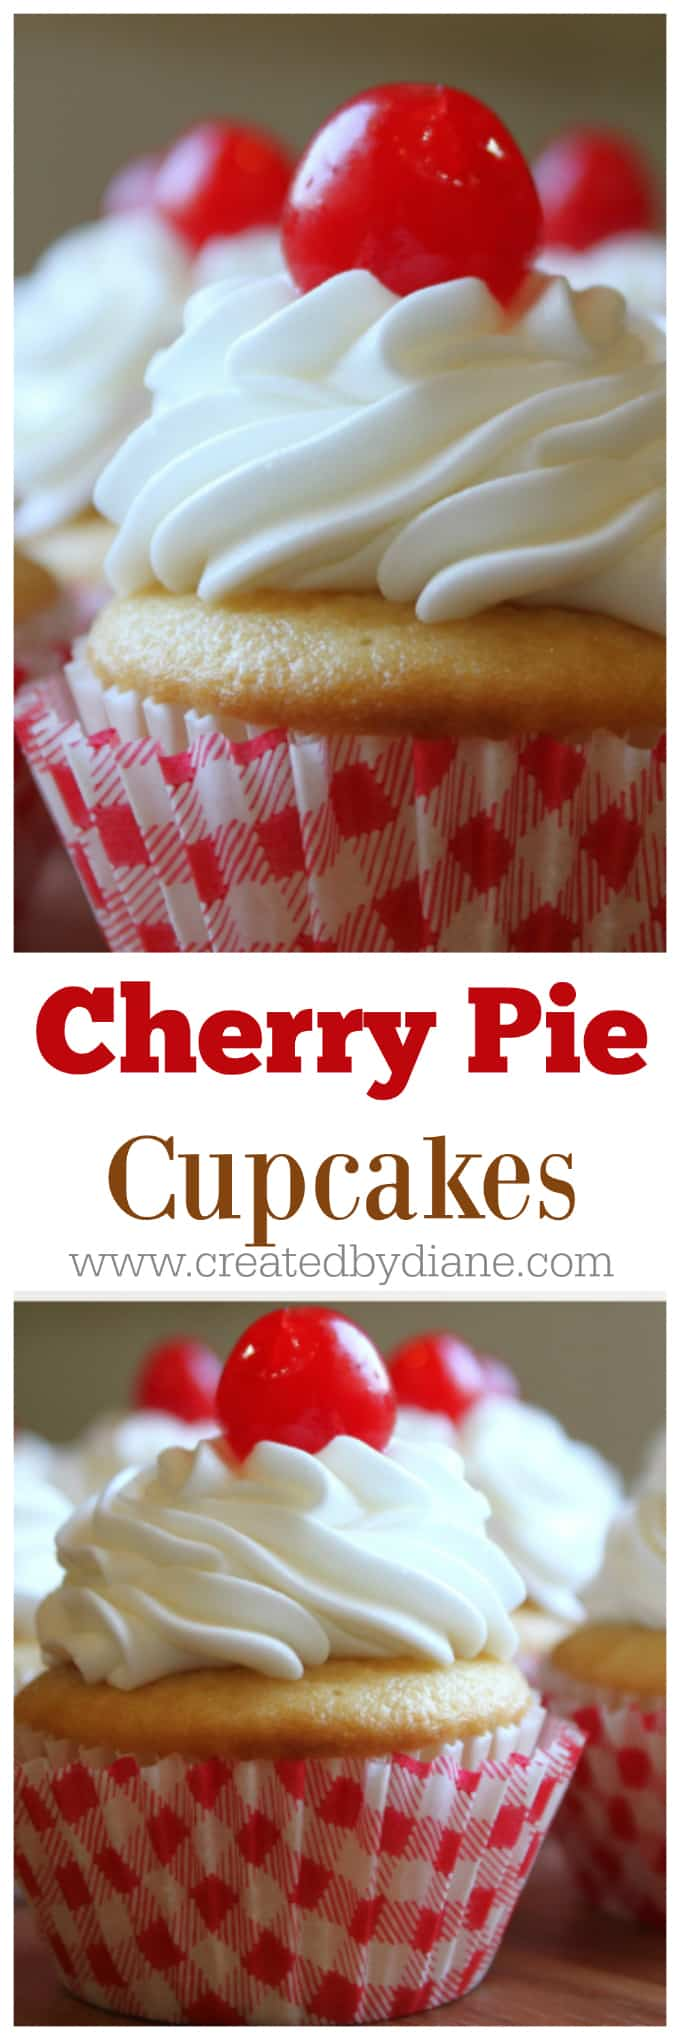 cherry pie cupcakes www.createdbydiane #cupcakes #cherrypie #fruit #fruitfilling